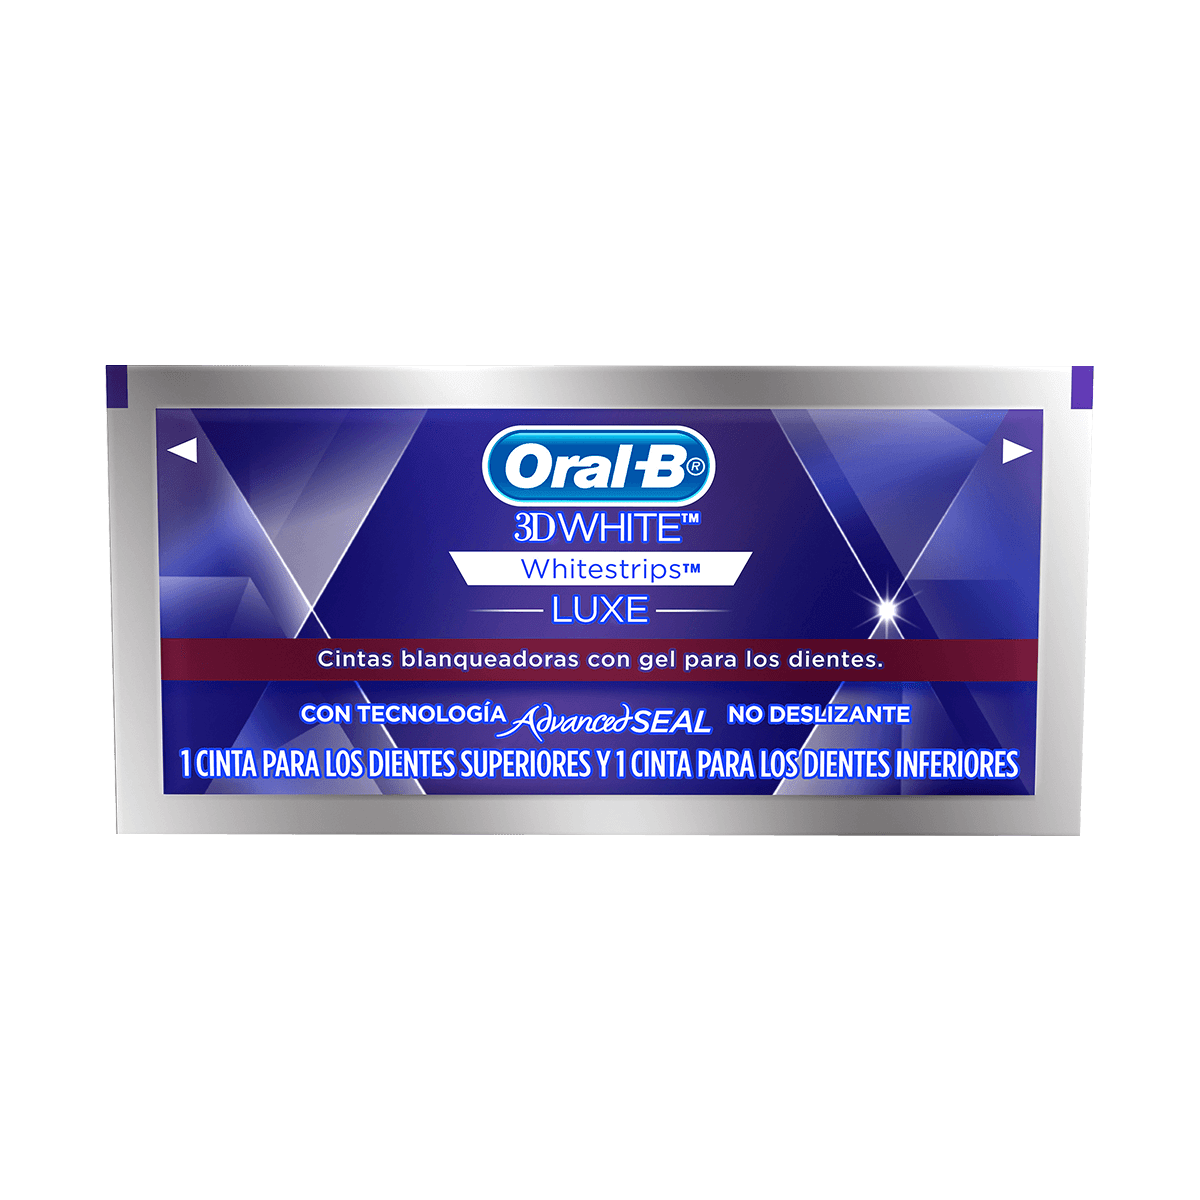 Tiras_Blanqueadoras_Oral-B_3DWhite_Advanced_Seal